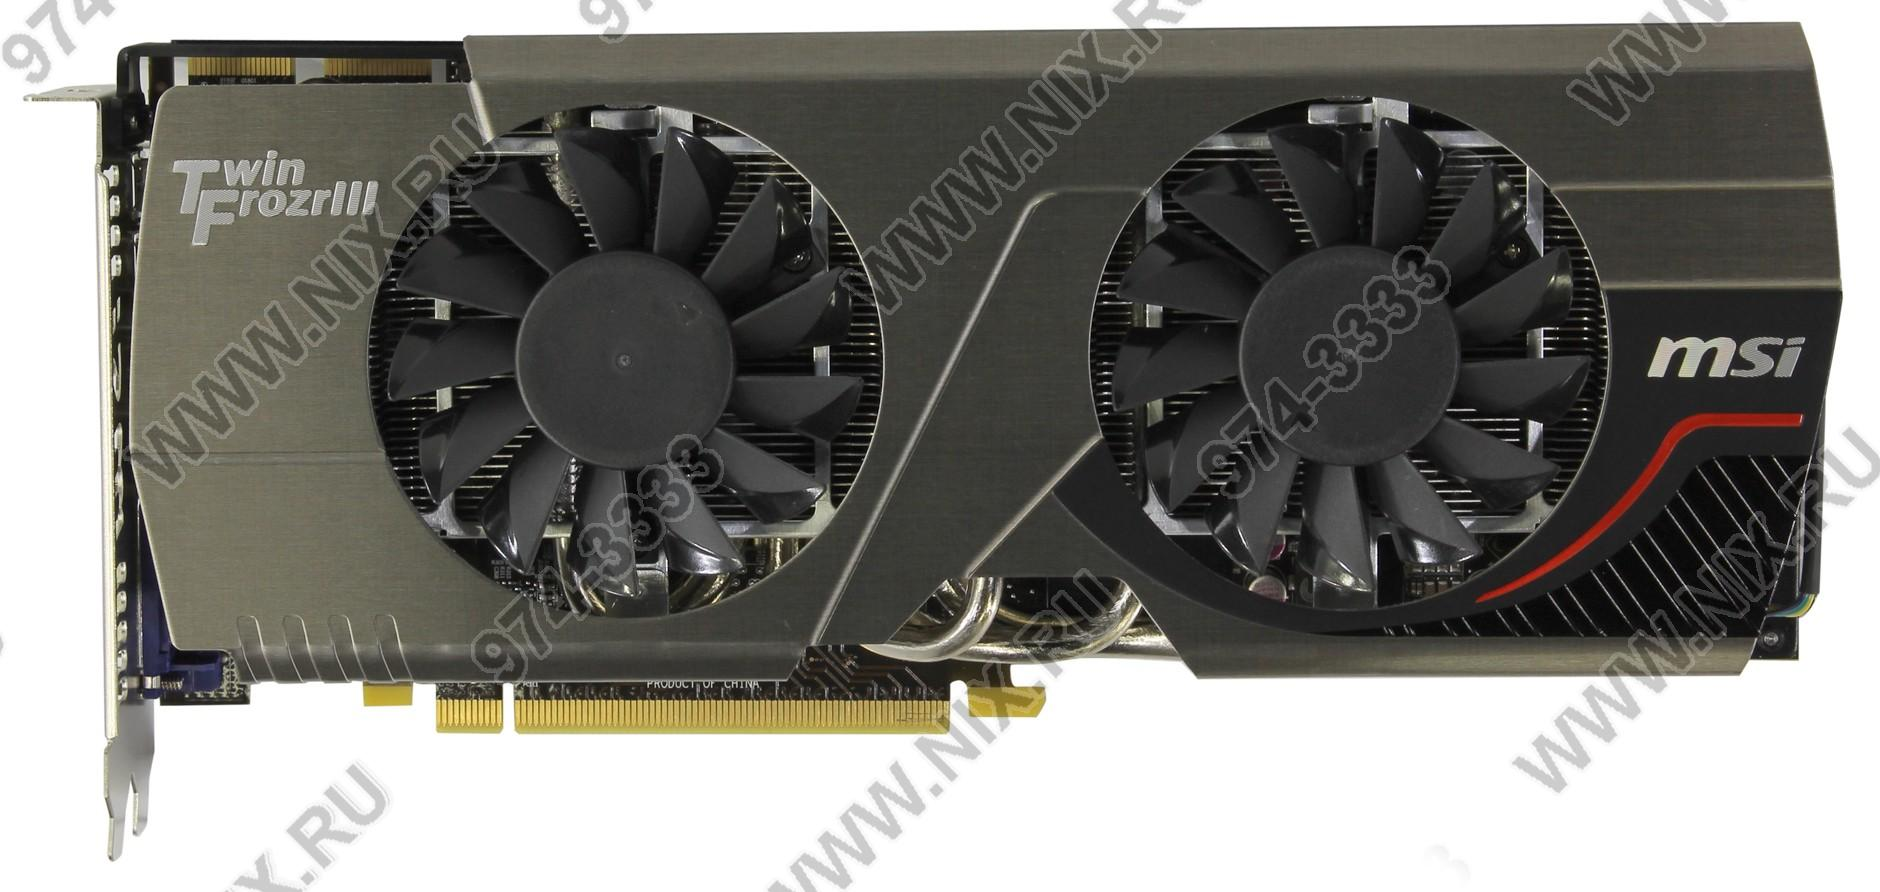 Видеокарта pci-e 3072мб msi r7970 tf 3gd5/oc be (radeon hd 7970, ddr5, dvi, hdmi, 2x minidp) (ret) 115517